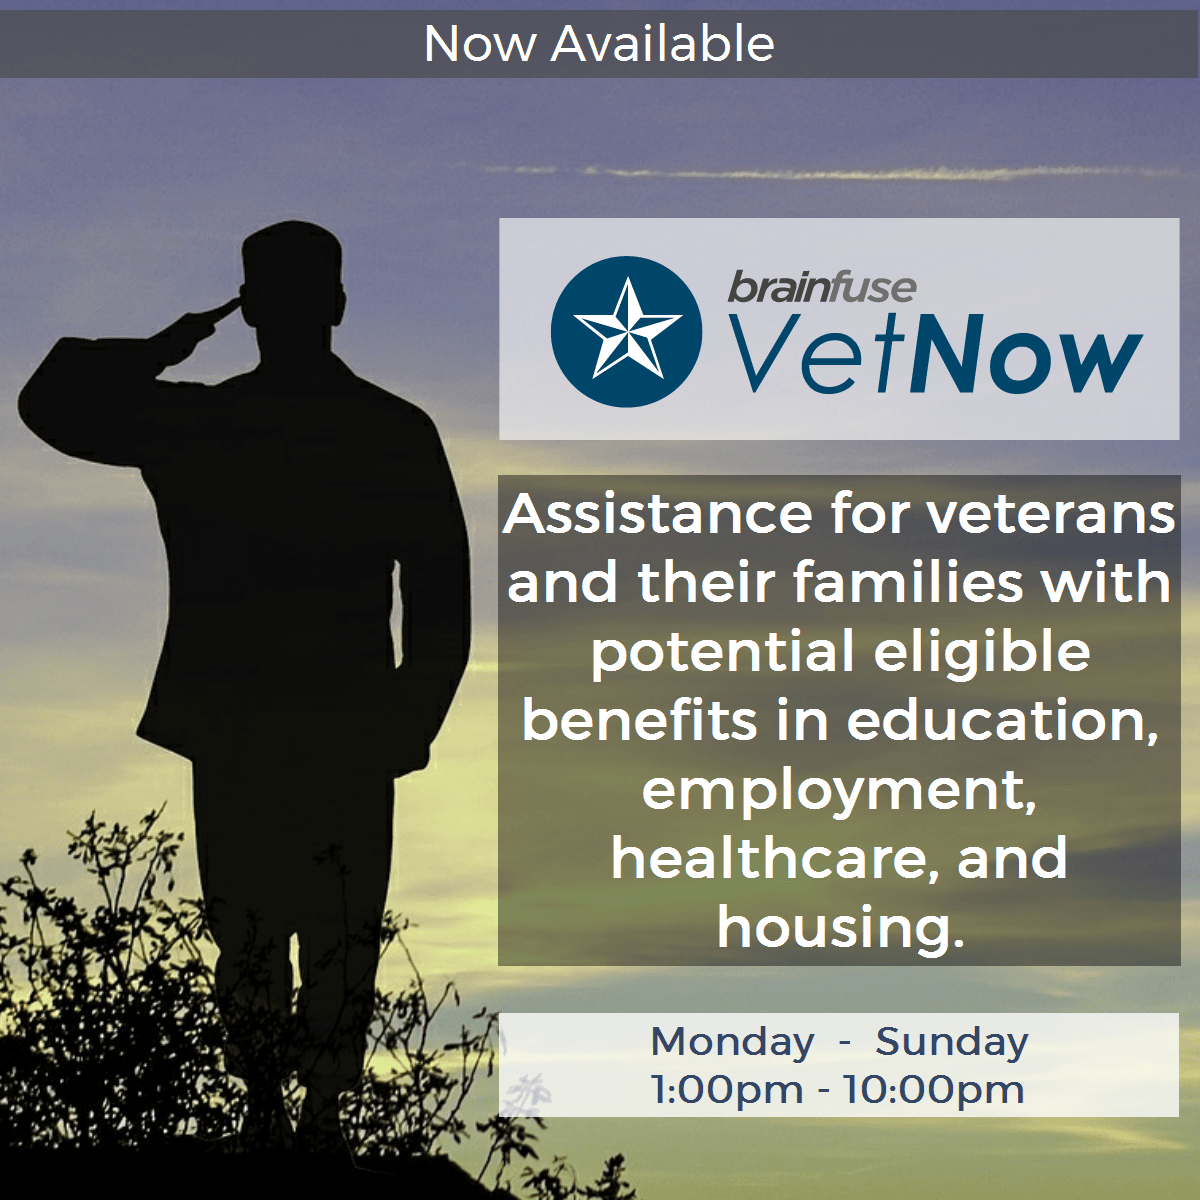 Brainfuse VetNew Assistance for Veterans RE: benefits, employment, housing. Call for help 768-3400